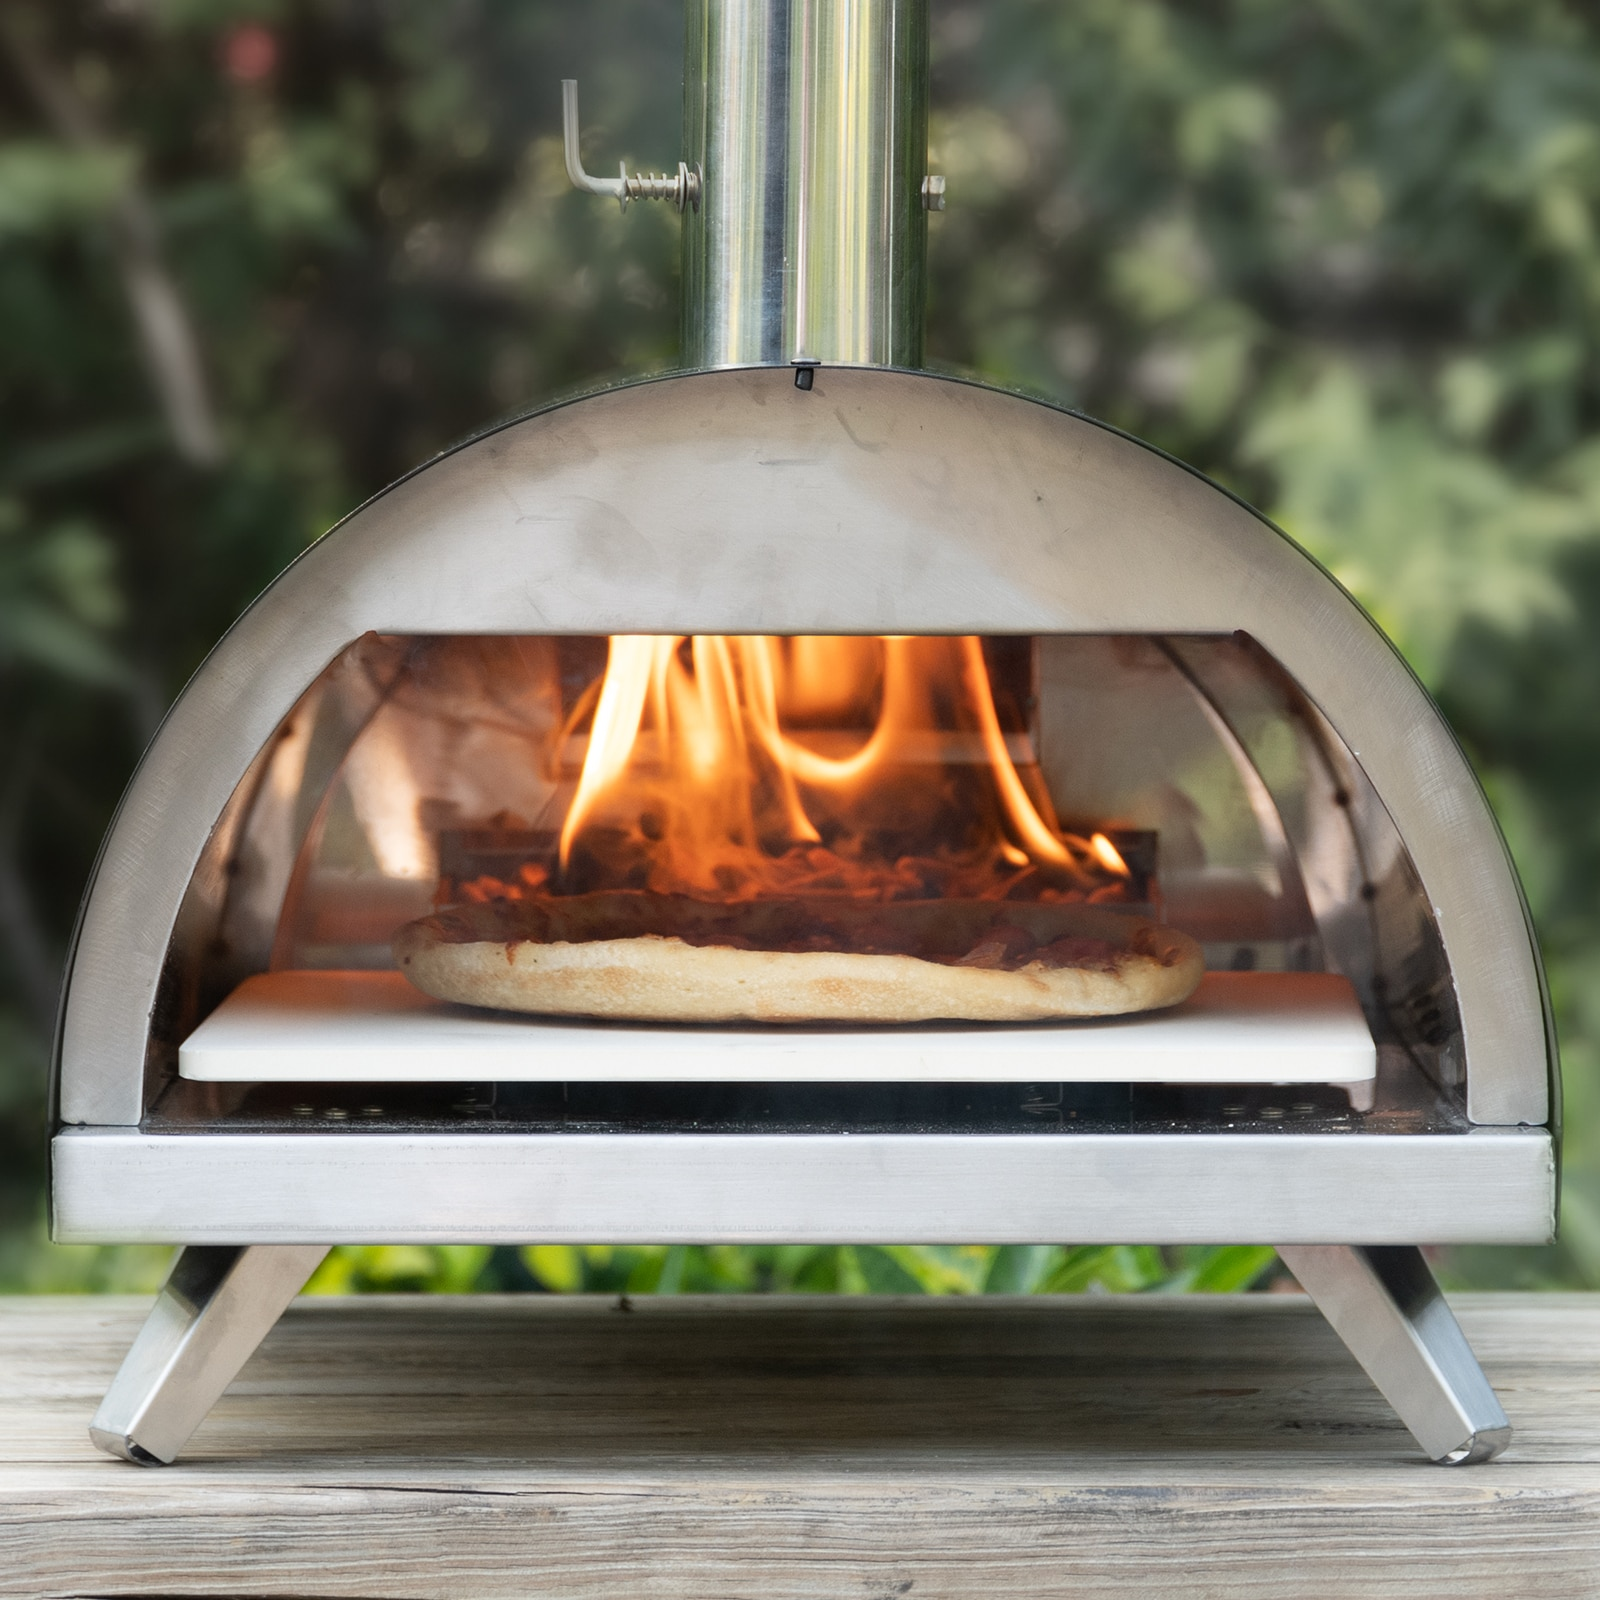 CHANGEMOORE-Outdoor-Pizza-Oven-12-Inch-Portable-Pizza-oven-Wood-Fired-Adiabatic-Pizza-Machine-Wood-Pellet.jpg